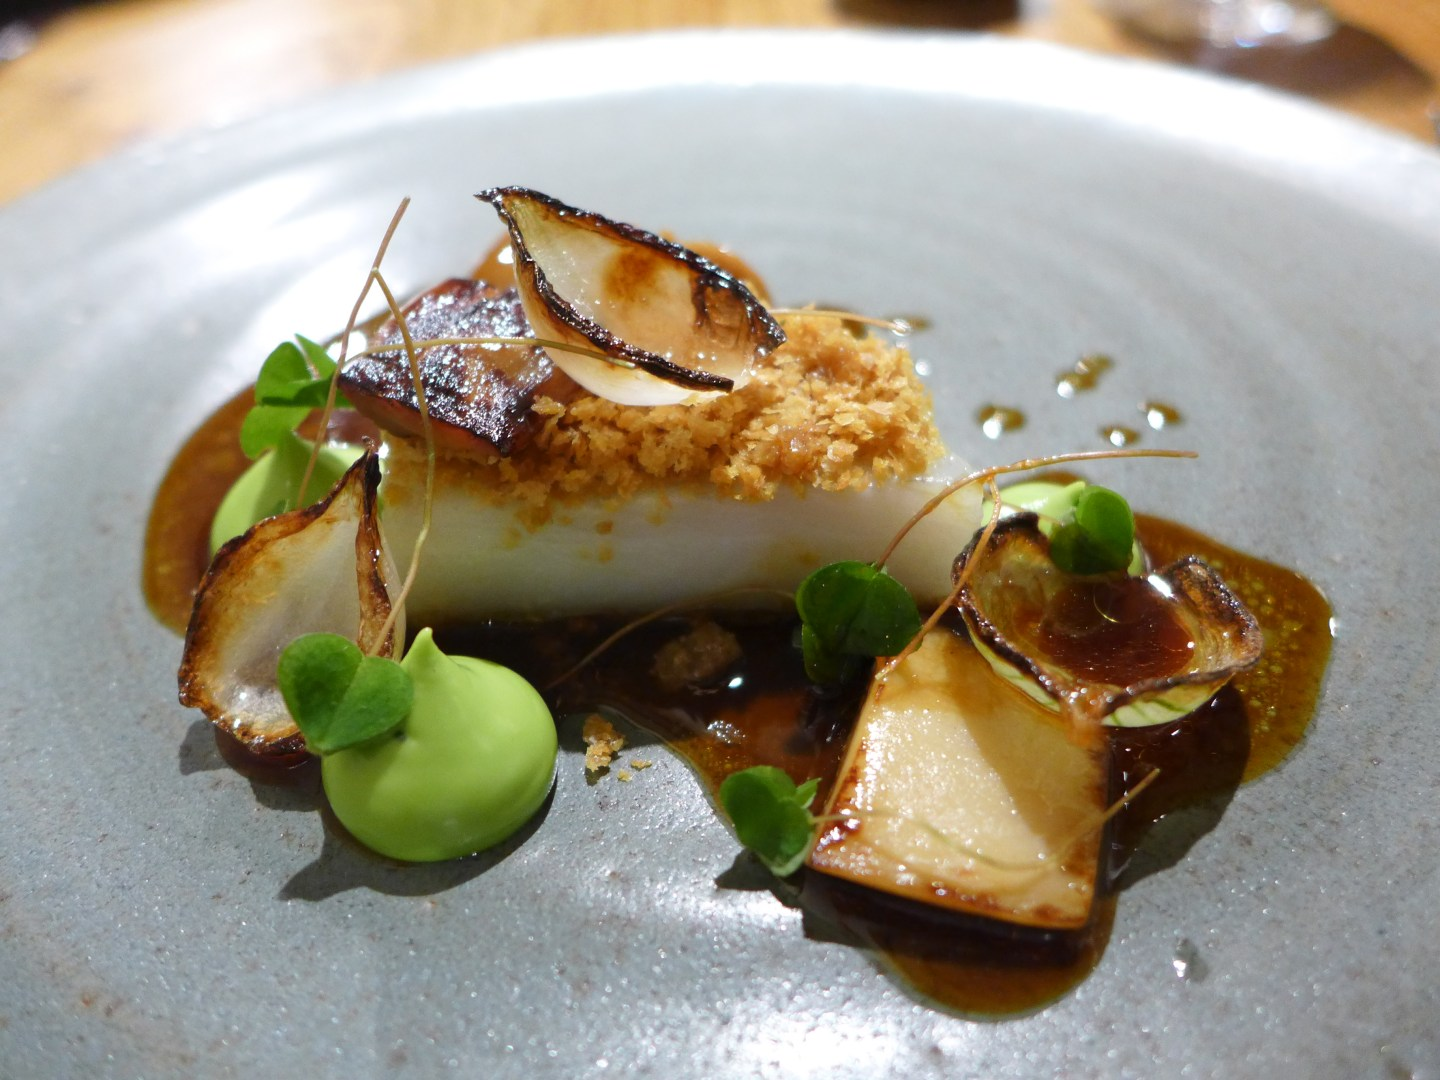 L'enclume - Brill in poultry juices, lovage, yeast flakes, fermented mushroom